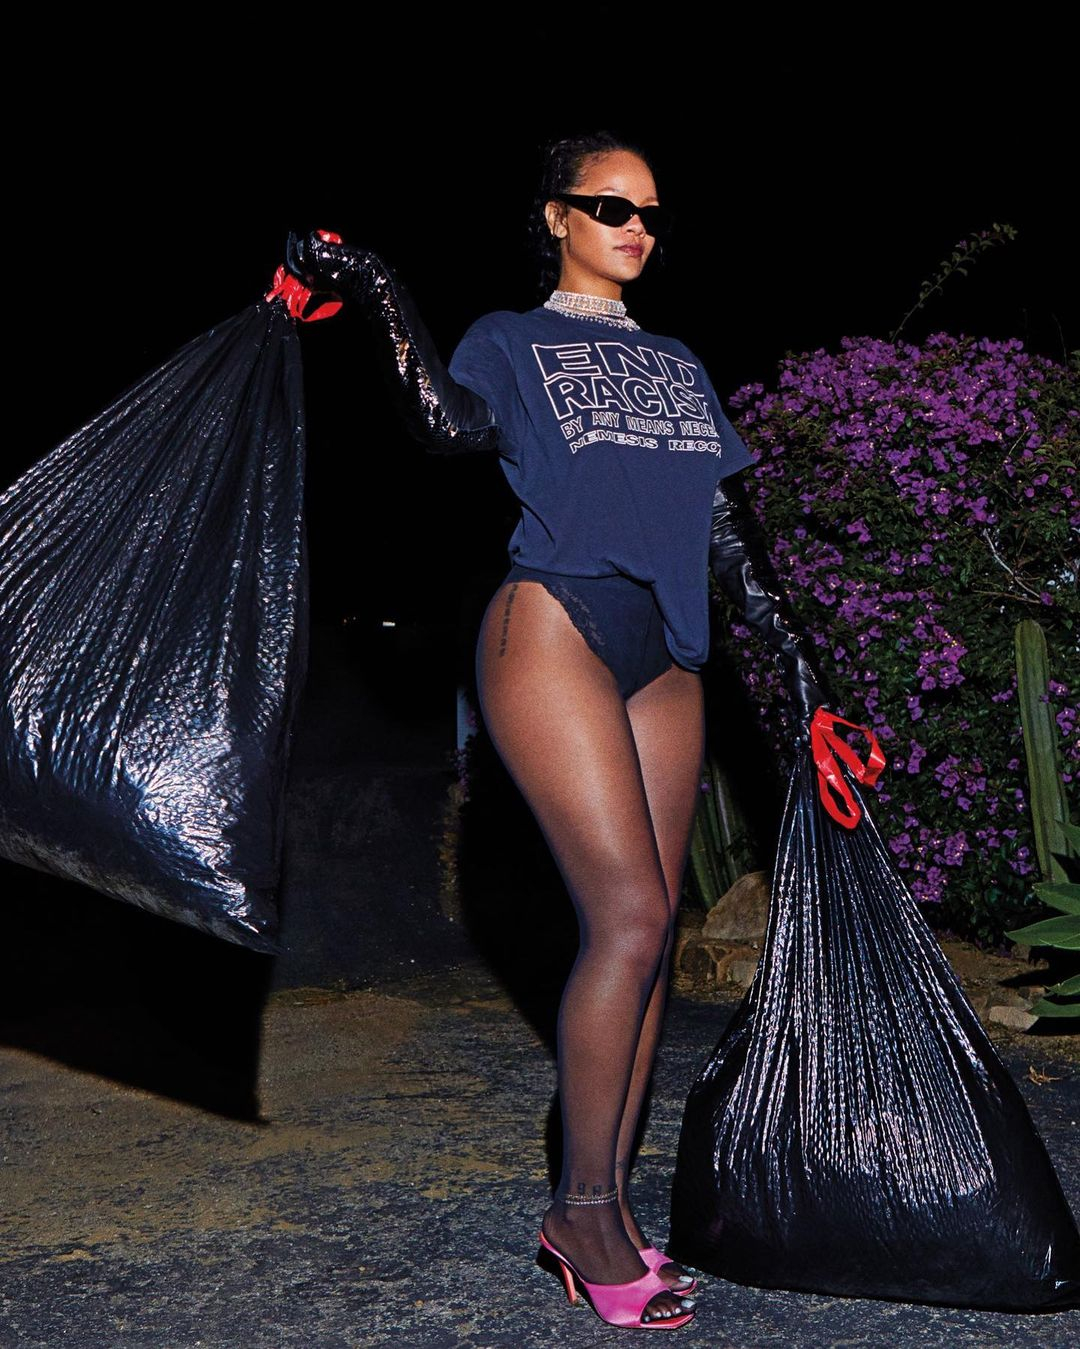 Rihanna showed off her pins taking out the trash in an End Racism shirt